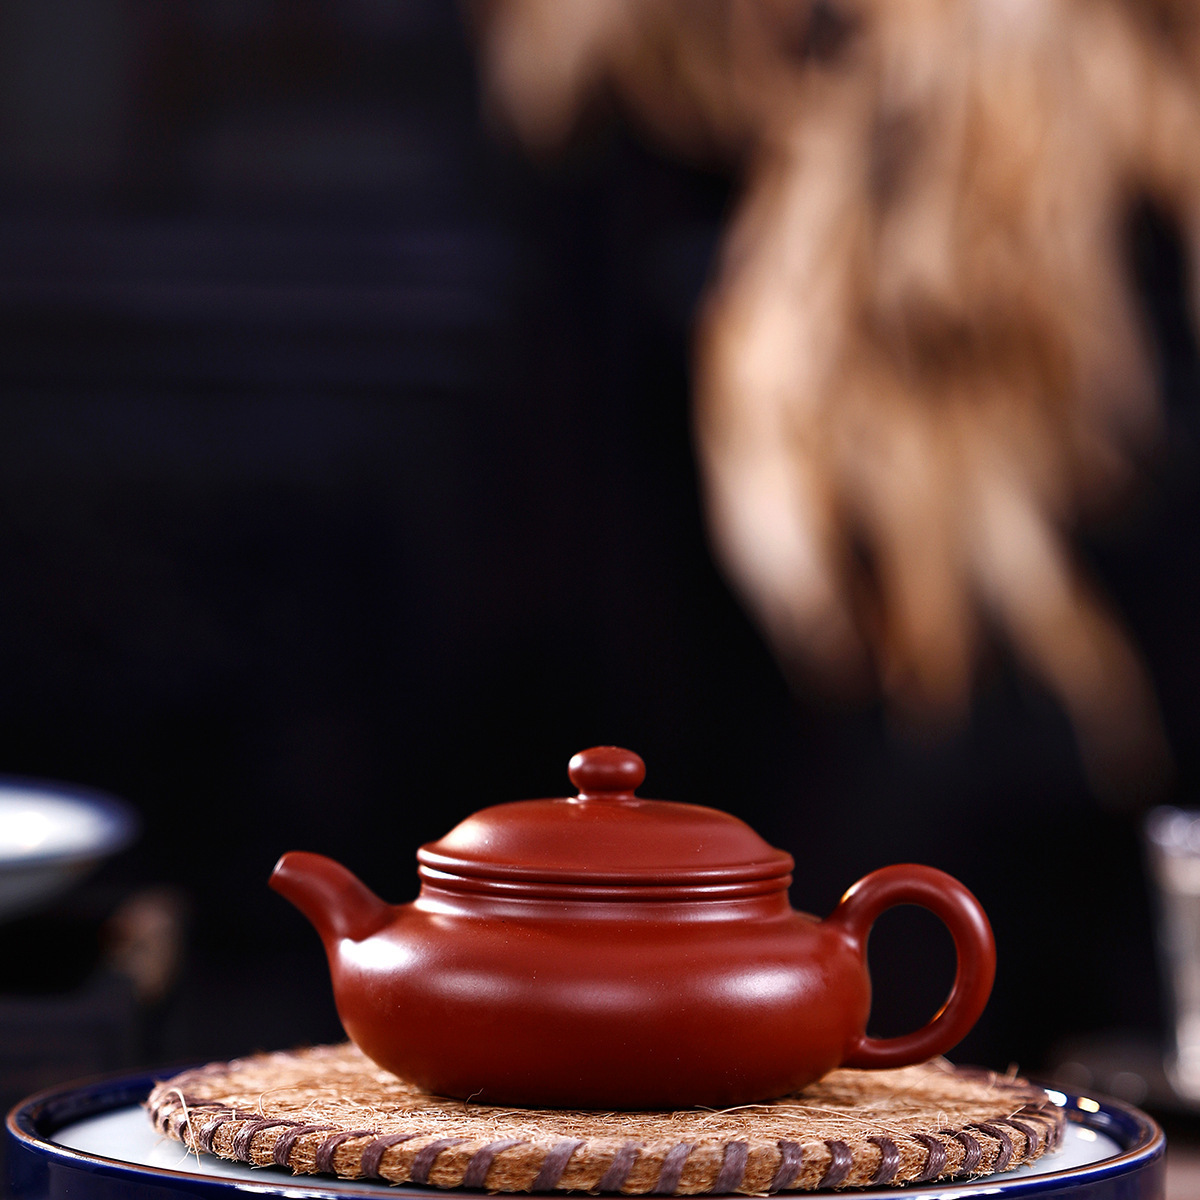 Full Manual Raw Ore Bright Red Robe Flat To Fake Something Antique Kettle Kungfu Online Teapot Tea Set Infusion Of Tea GiftFull Manual Raw Ore Bright Red Robe Flat To Fake Something Antique Kettle Kungfu Online Teapot Tea Set Infusion Of Tea Gift